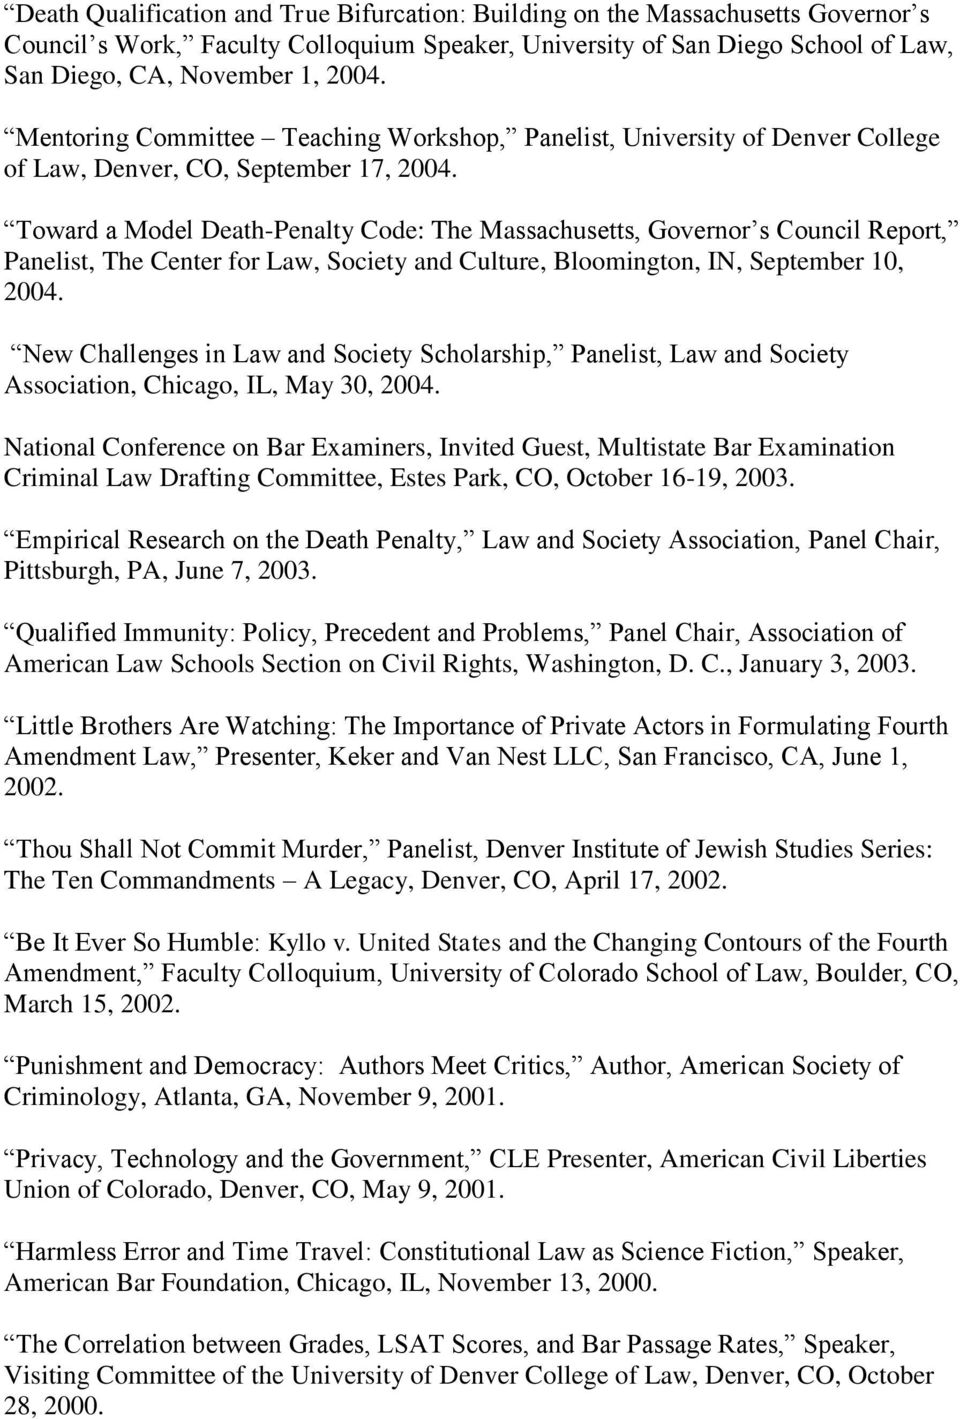 Toward a Model Death-Penalty Code: The Massachusetts, Governor s Council Report, Panelist, The Center for Law, Society and Culture, Bloomington, IN, September 10, 2004.